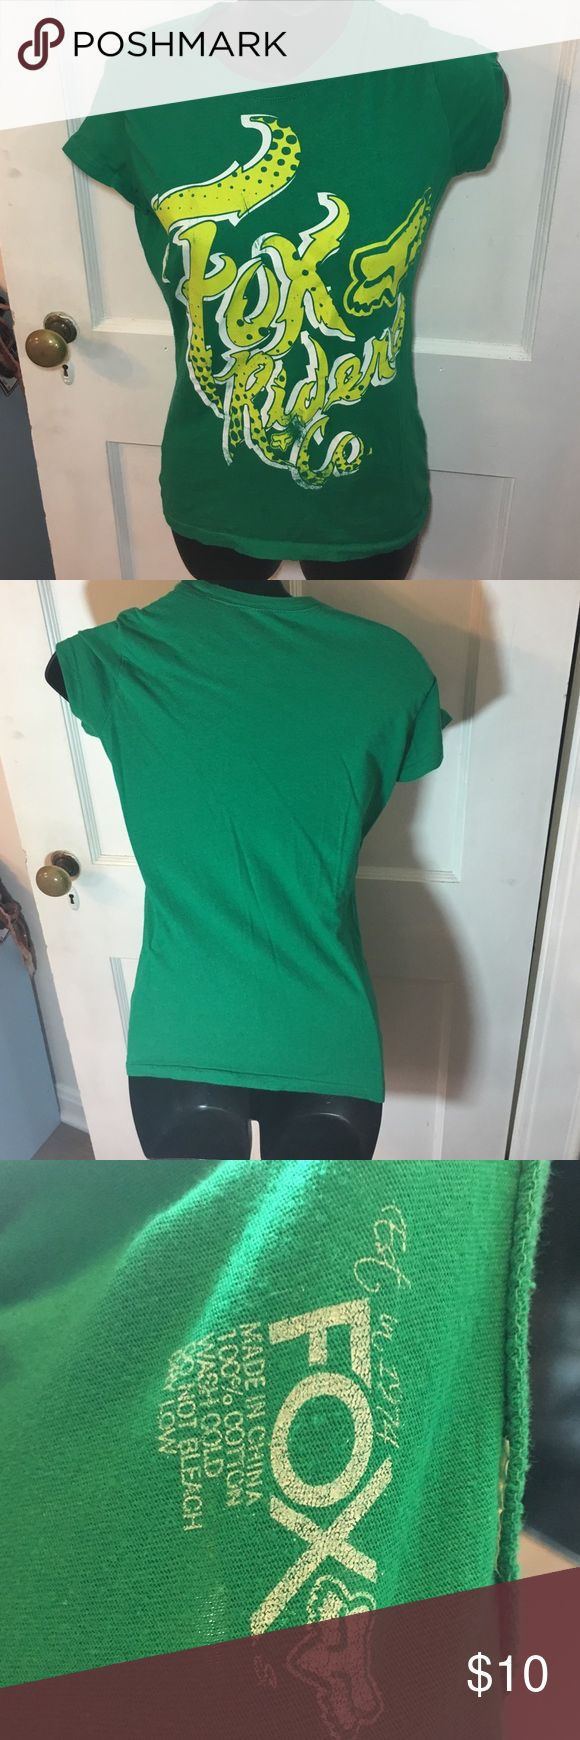 Fox Racing Shirt Bust 13 1/2in laying flat   -Good condition! MAKE ME AN OFFER!  -Pre loved item -I do not accept offers in the comments so please make all reasonable offers using the offer button only. :) -NO TRADES  -NO HOLDS 🚫 -I ship every Monday, Wednesday and Friday  -All items are hand washed before they are shipped out   💕Instagram- allisonsbeautyboutique 💕 Your purchase is going to help me graduate community college with as little debt as possible. Thank you! Fox Racing Tops Tees…